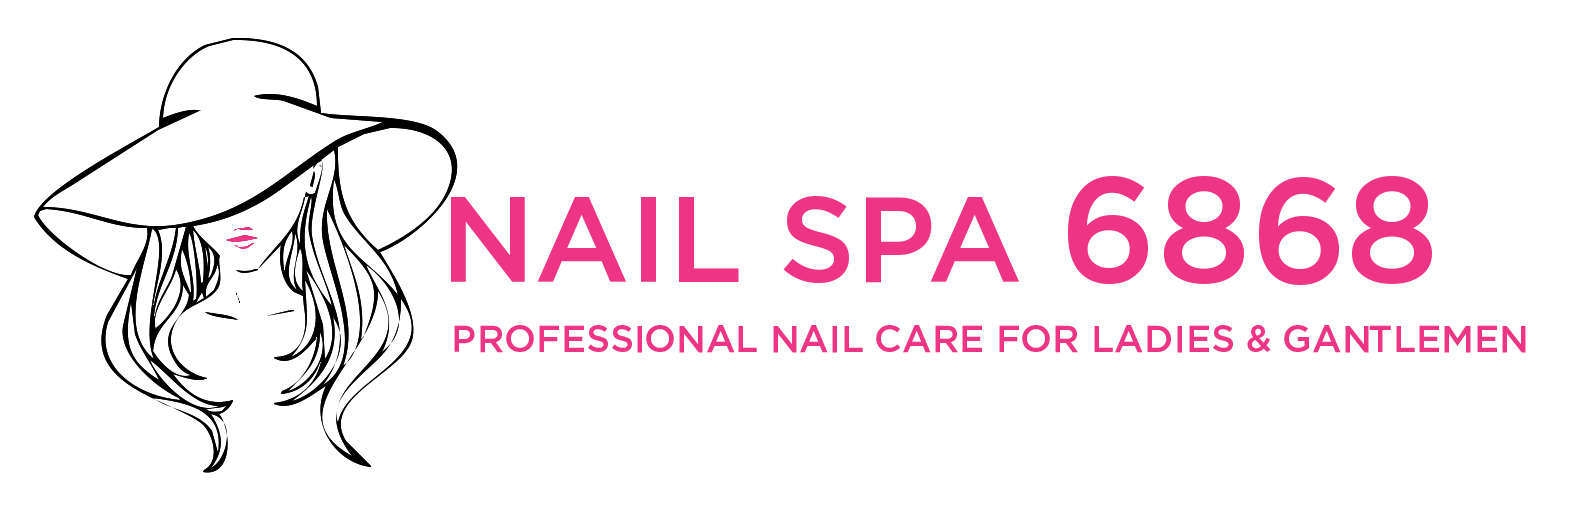 What are the reviews of the customers after using nail services at  Nailspa6868 ?- nail salon near me Cambridge